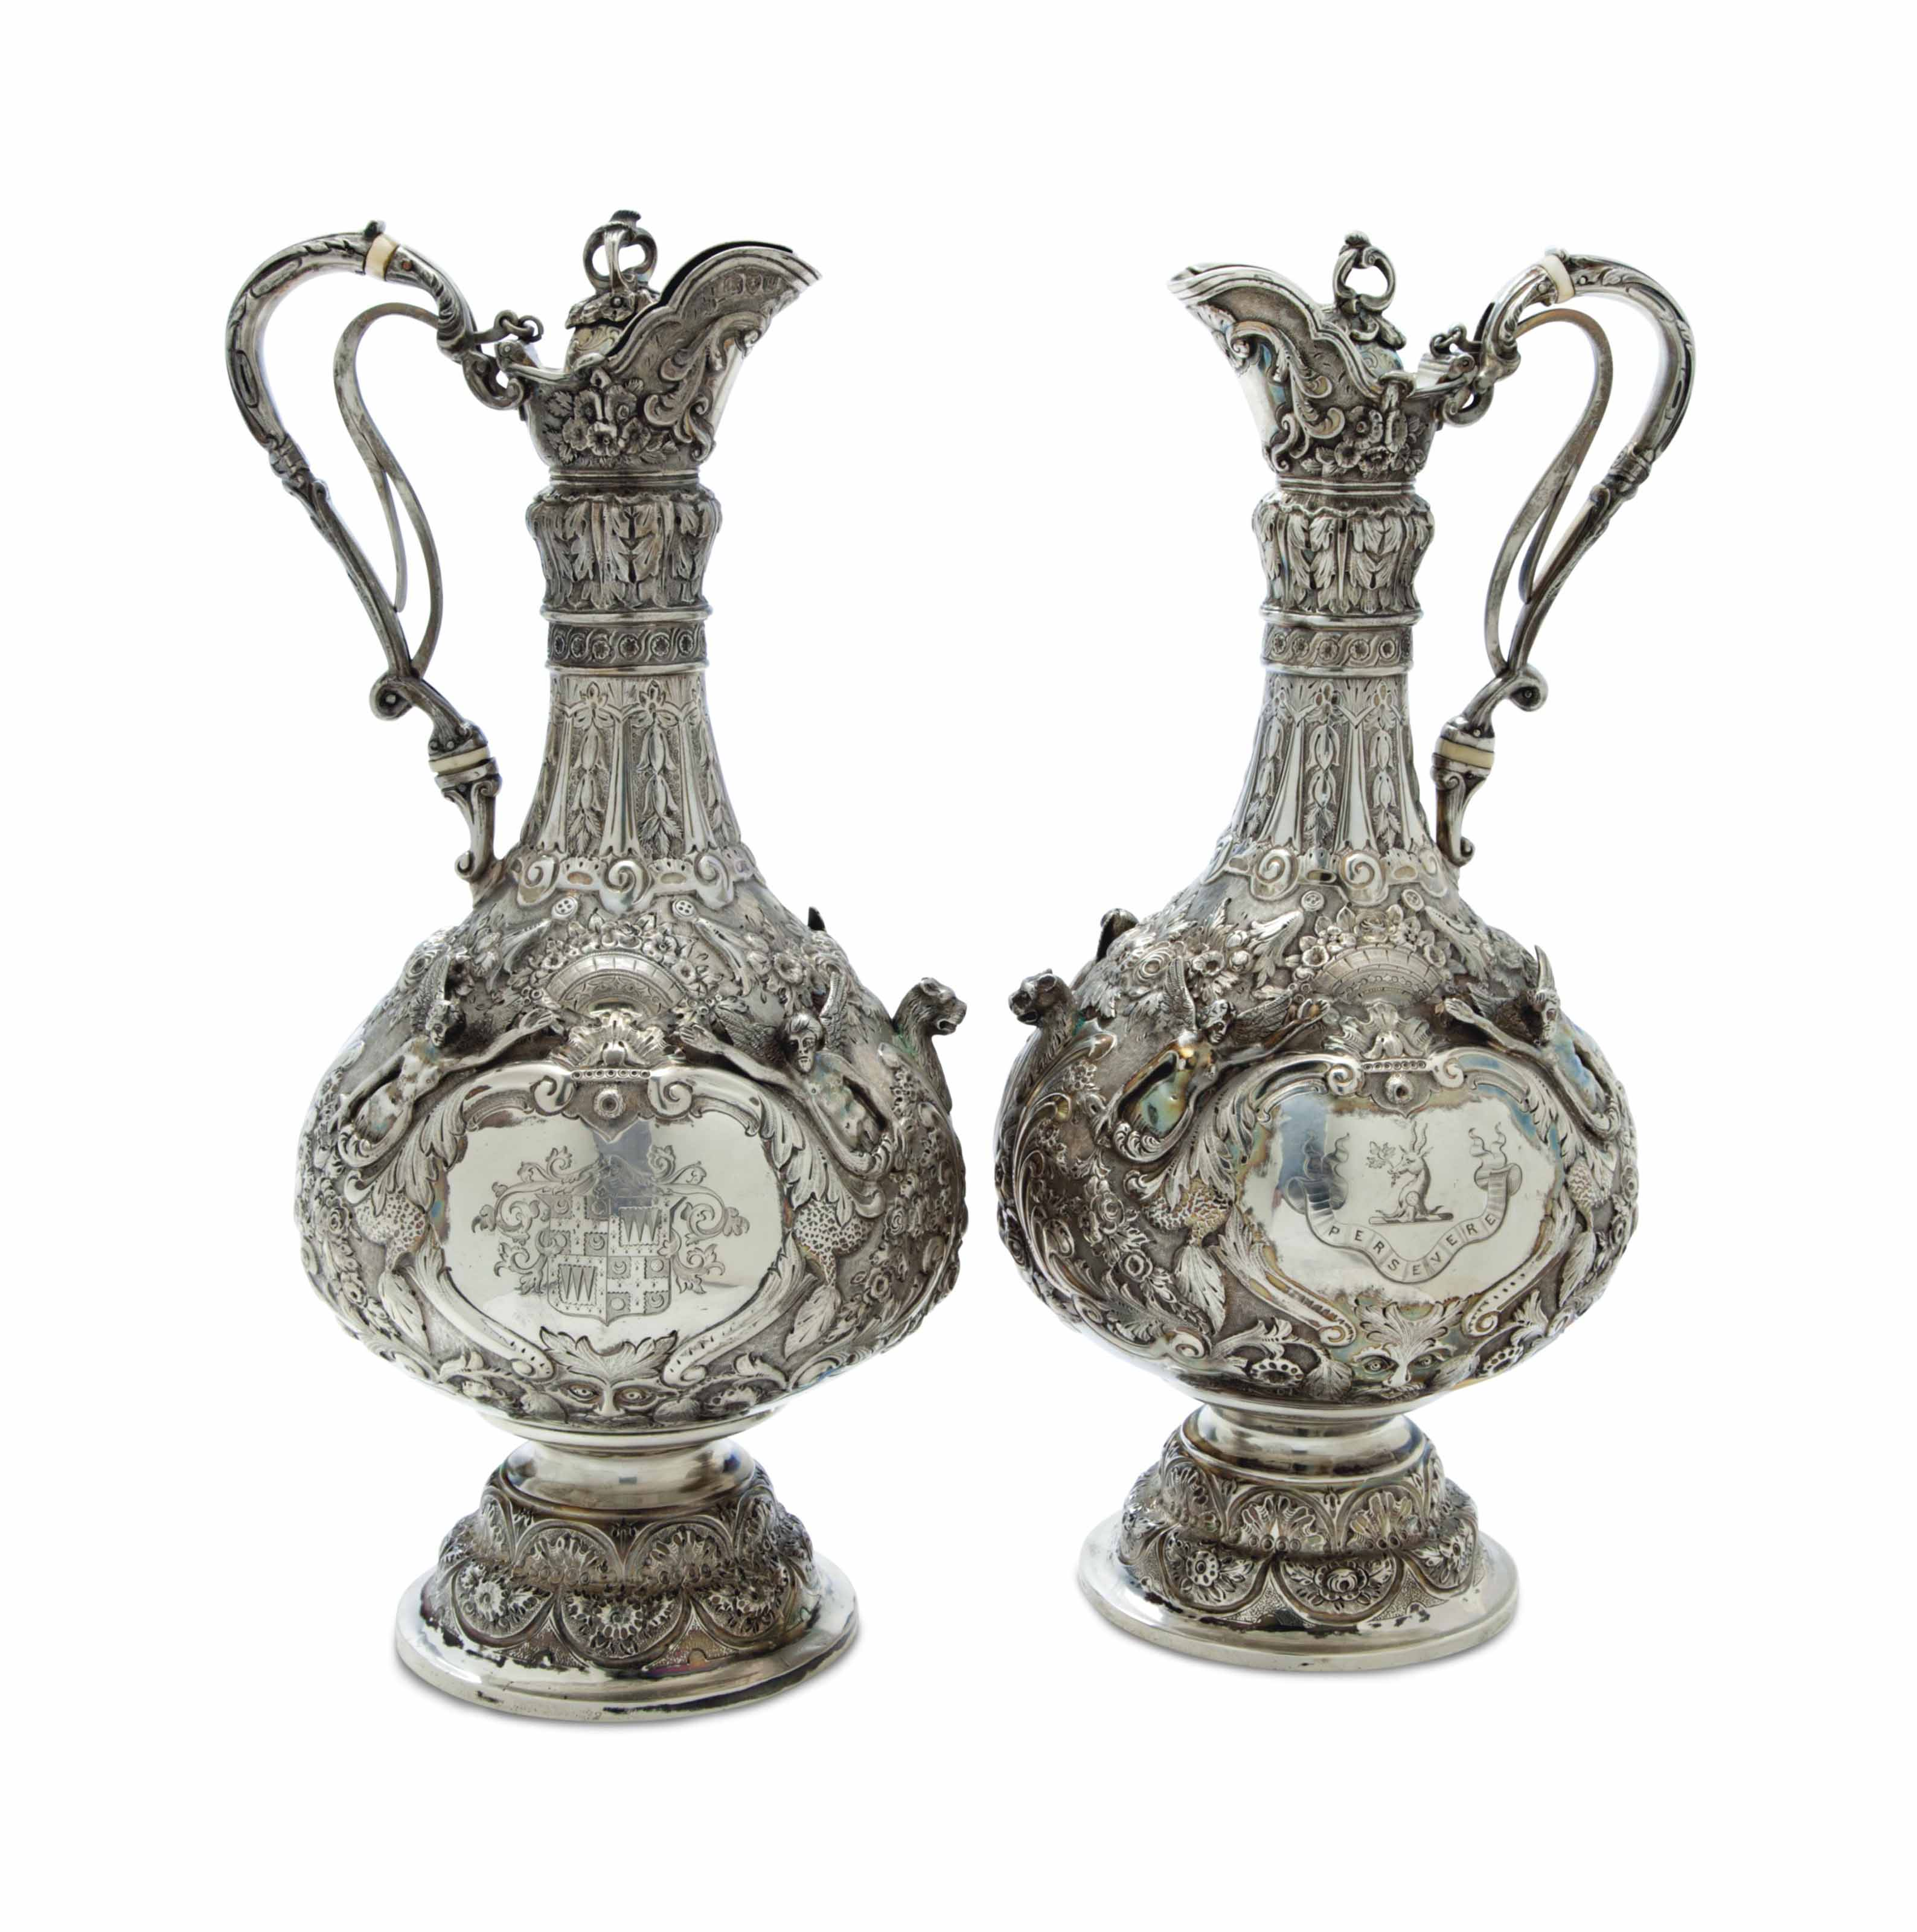 A MATCHED PAIR OF ENGLISH REPOUSSE SILVER EWERS